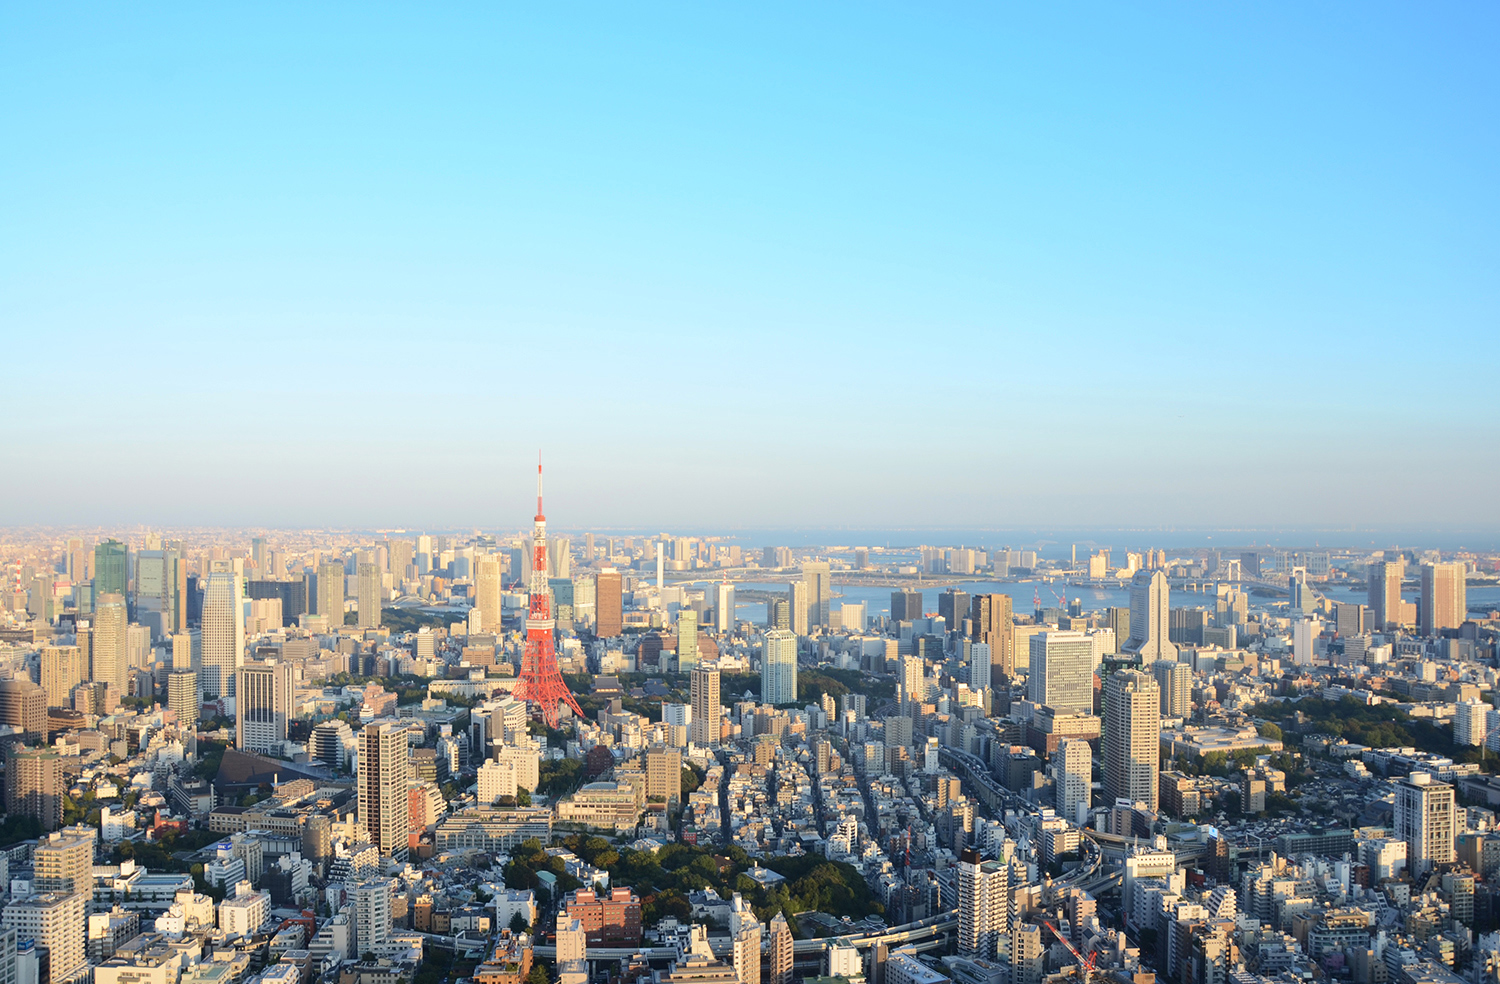 Tokyo – Capital of the Rising Sun 2